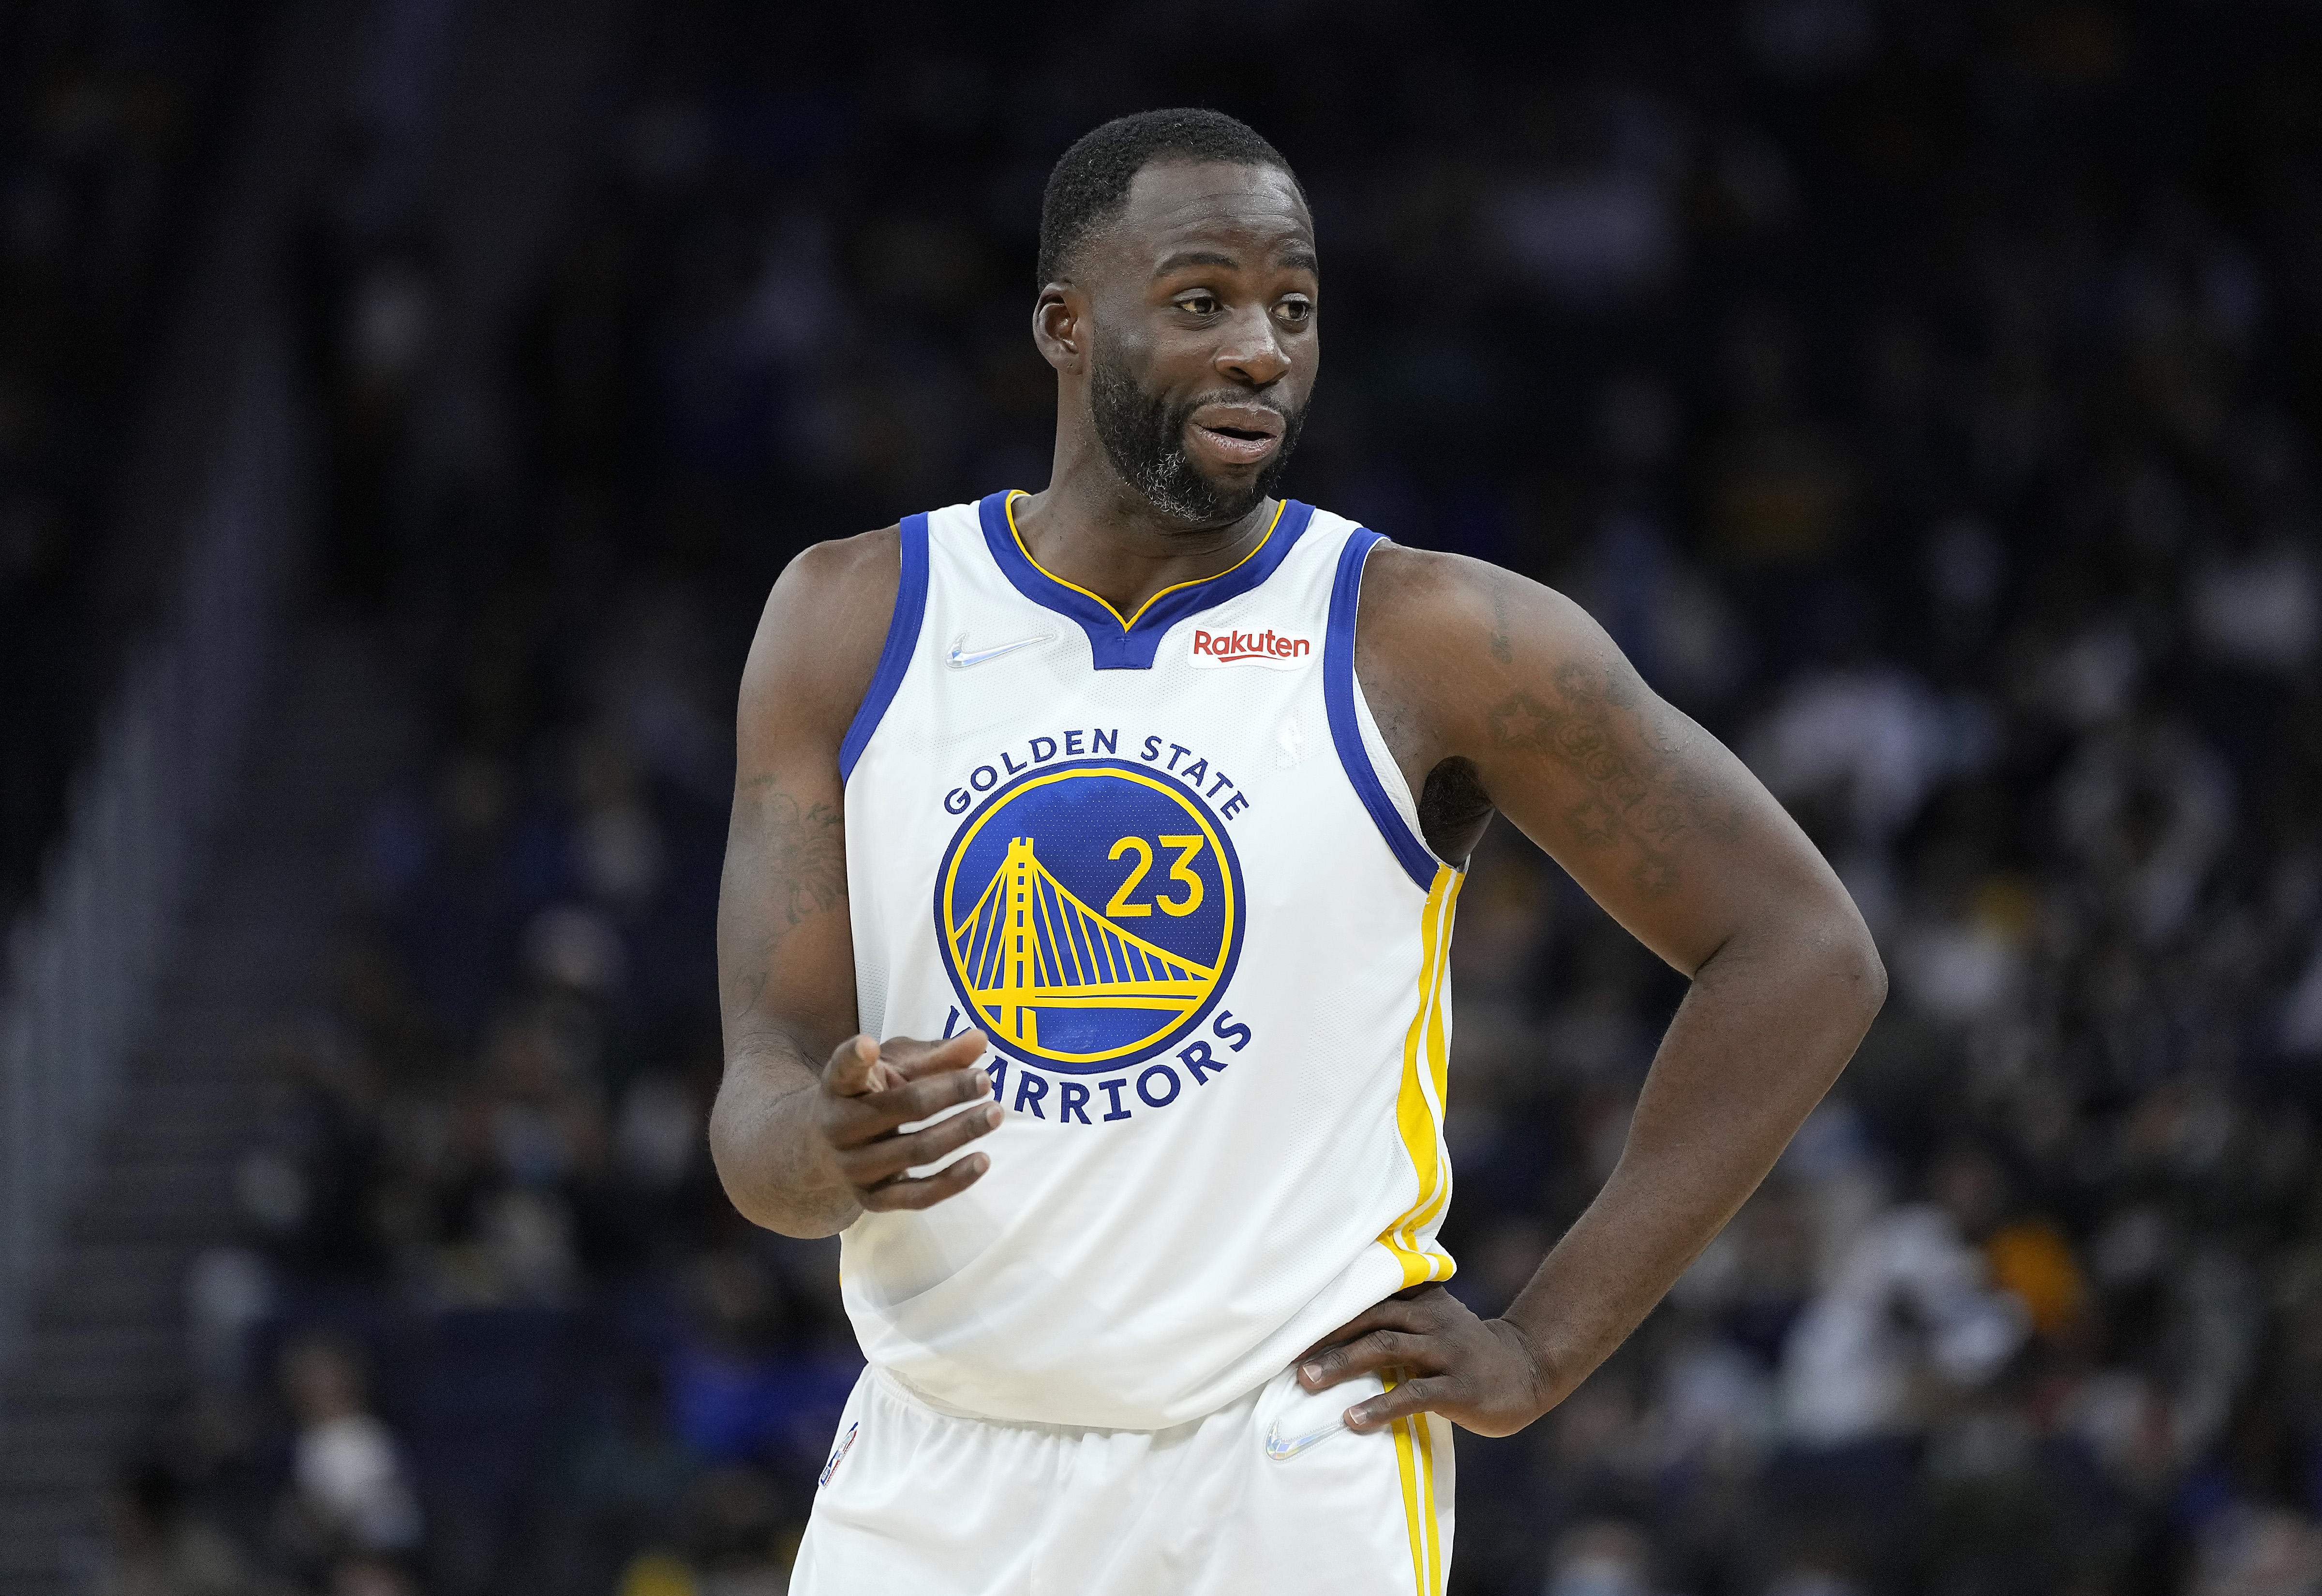 Draymond Green #23 of the Golden State Warriors looks on against the Portland Trail Blazers during the second half of their game at Chase Center on October 15, 2021 in San Francisco, California.